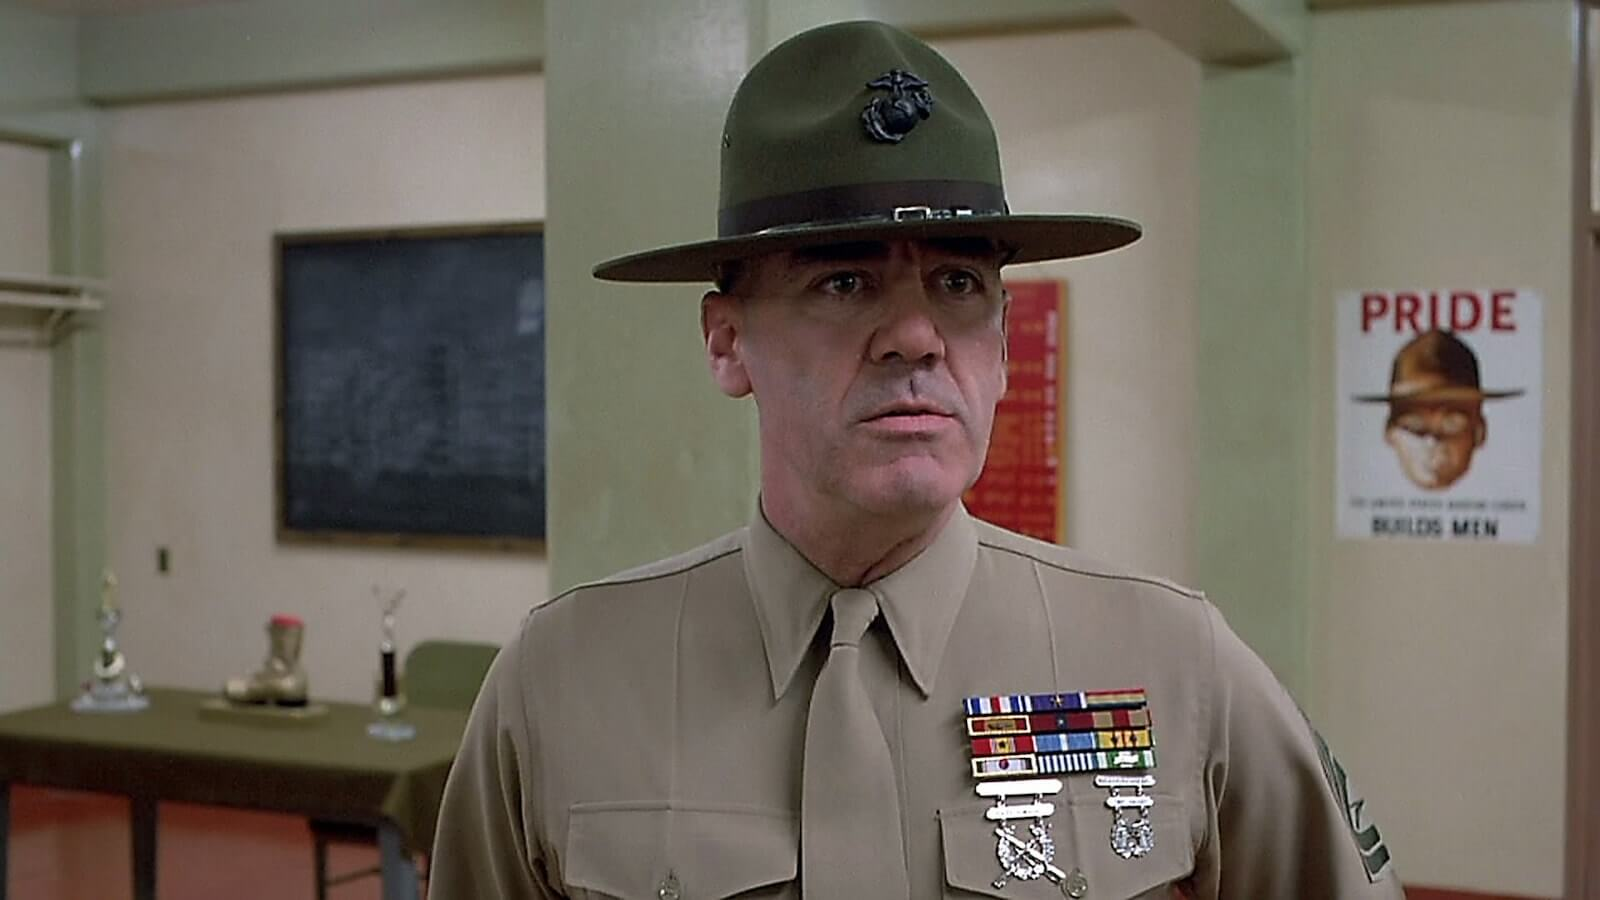 Character Archetypes - Full Metal Jacket